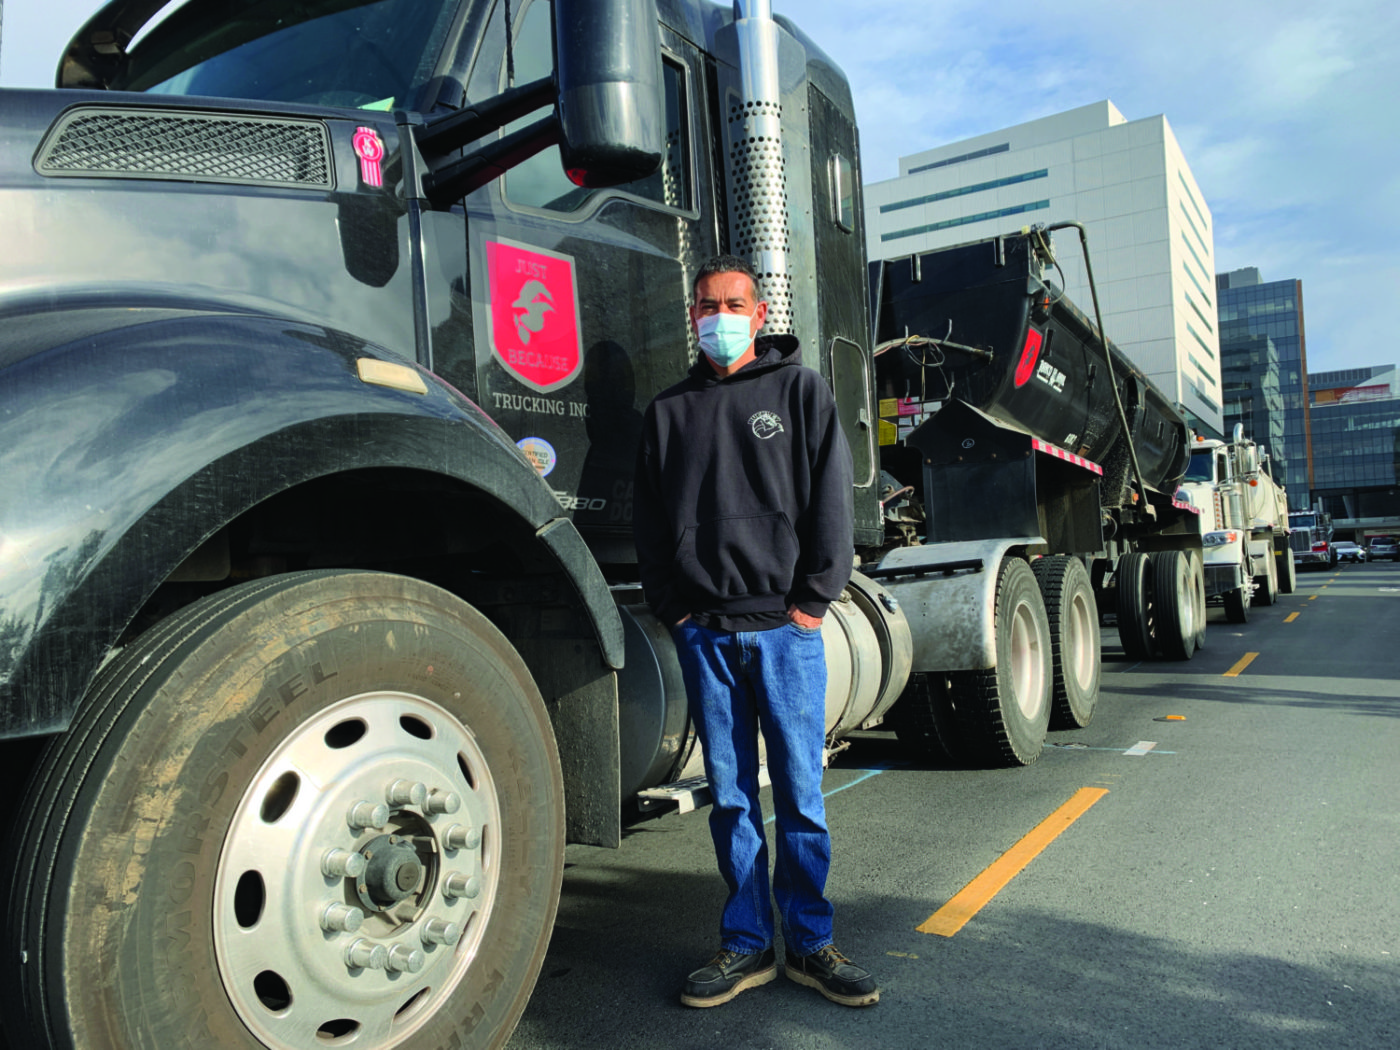 Gerardo-Just-Because-Trucking-UCSF-job-site-shutdown-043021-by-Griffin-1400x1050, Black truckers shut down multi-million-dollar UCSF job site for 4.5 hours, Local News & Views